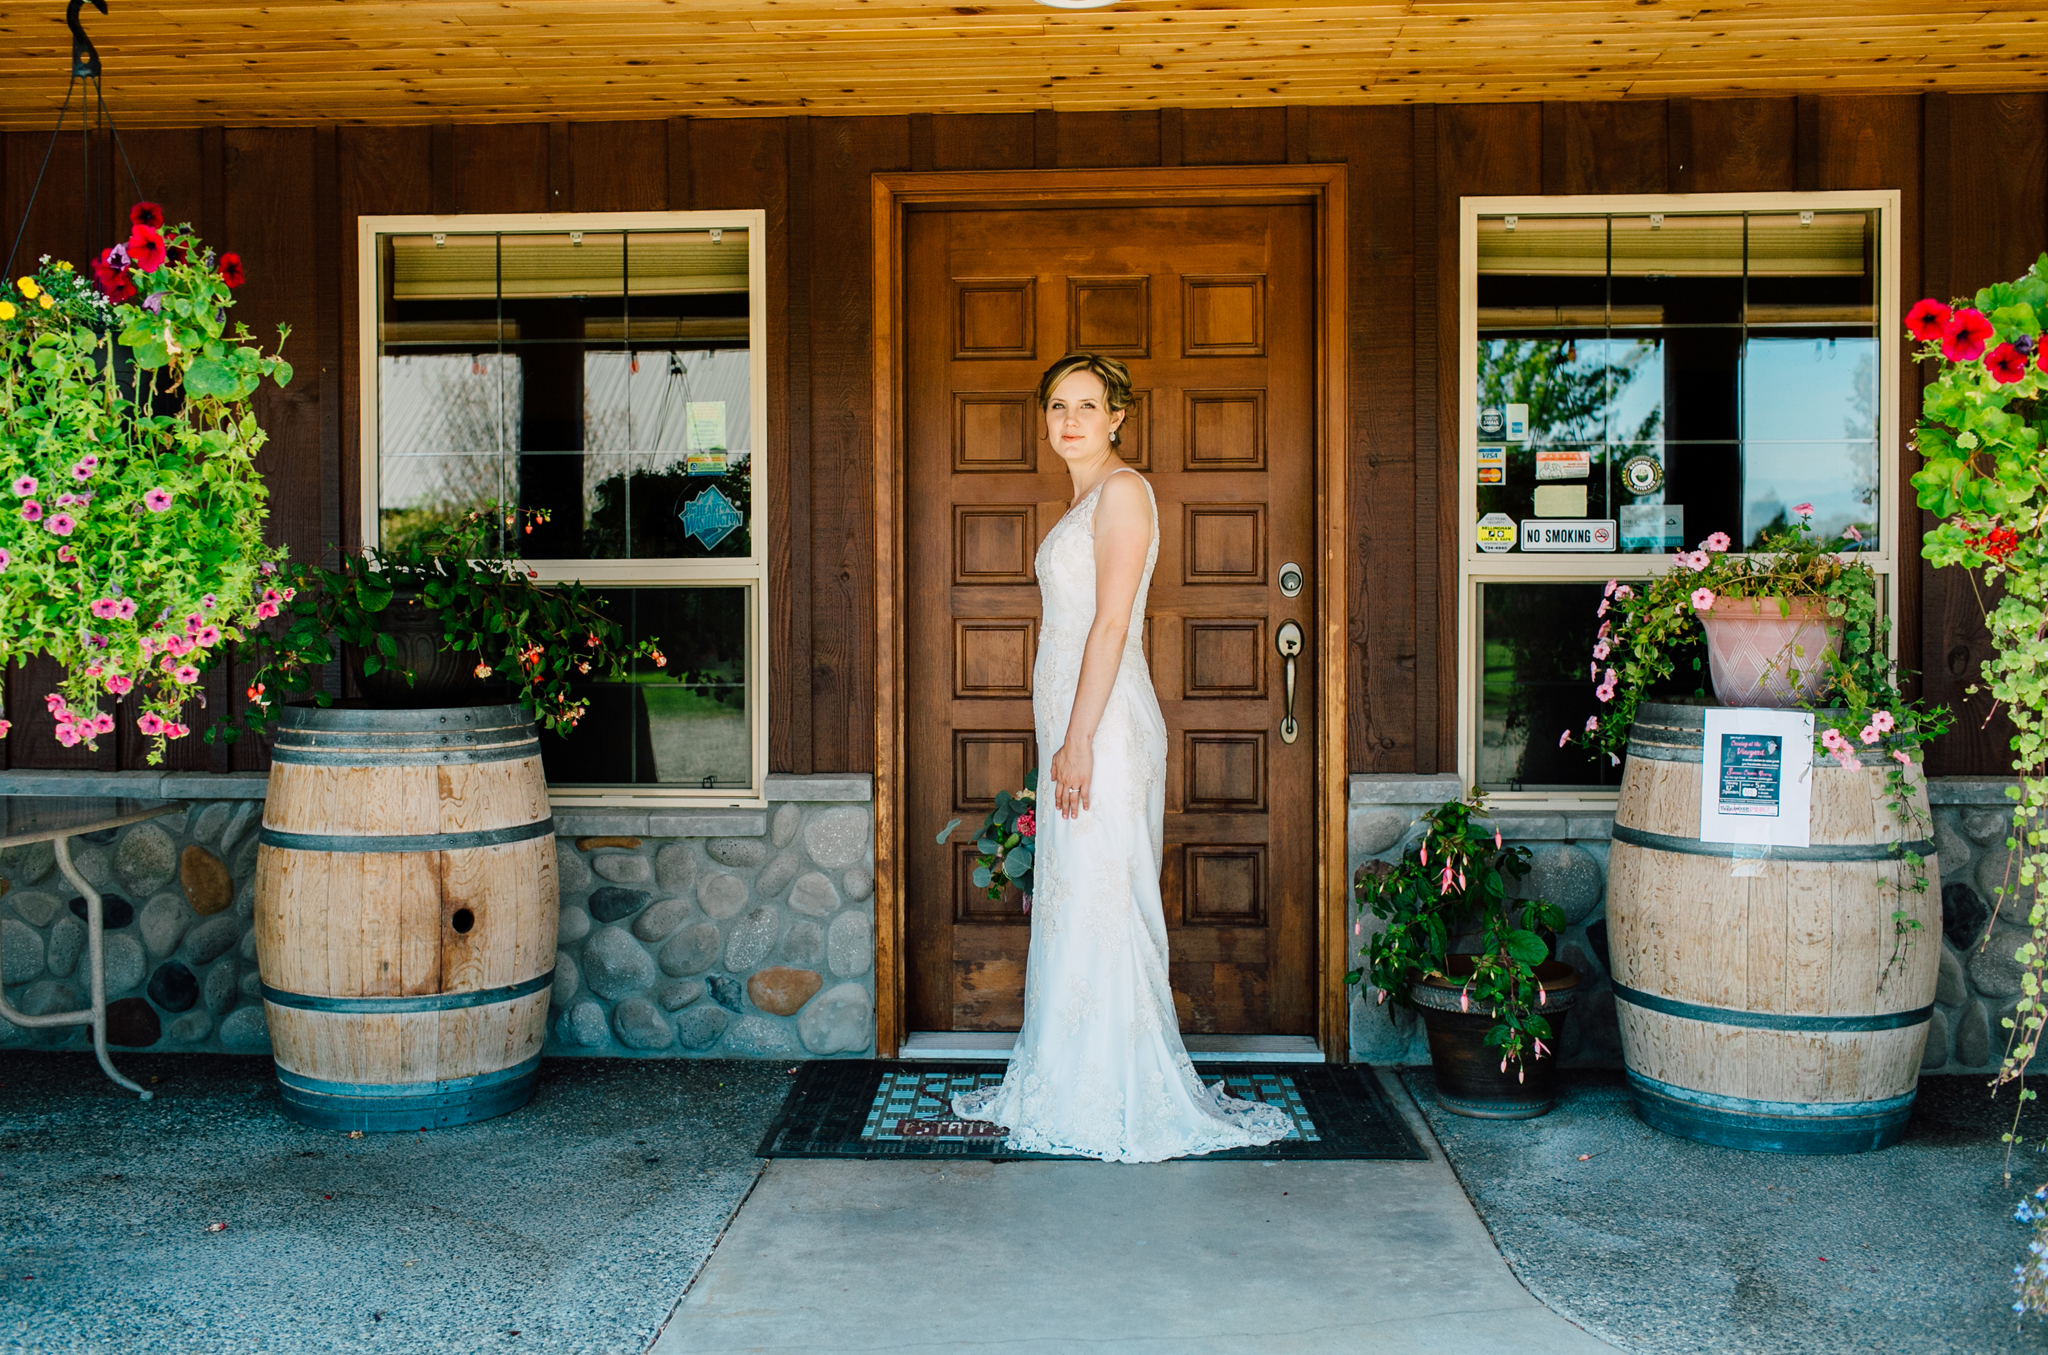 009-bellingham-wedding-photographer-samson-winery-katheryn-moran.jpg